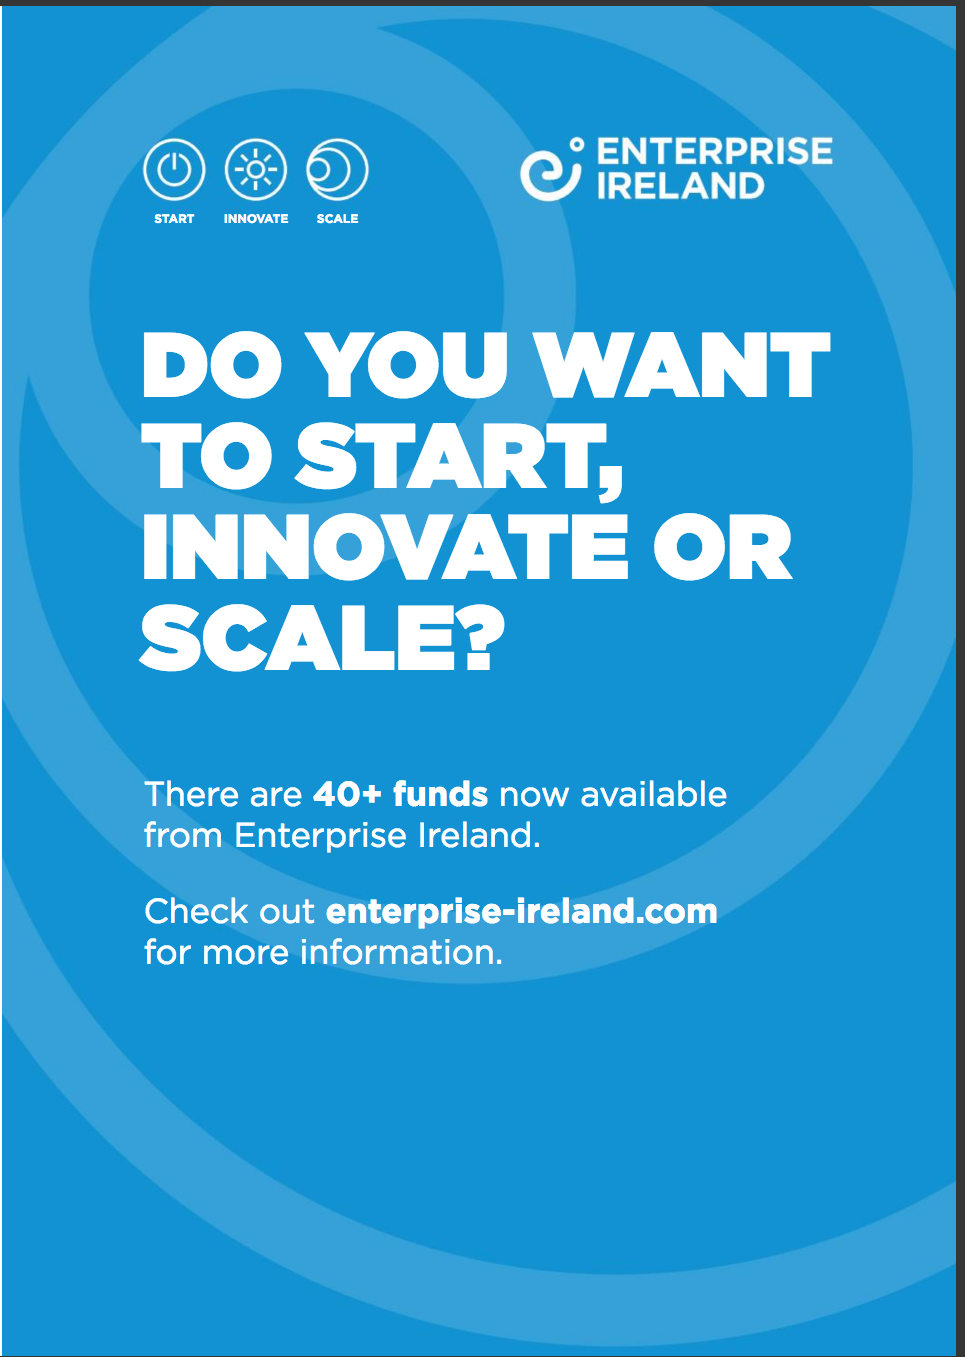 Enterprise Ireland – Do you want to start, innovate or scale?